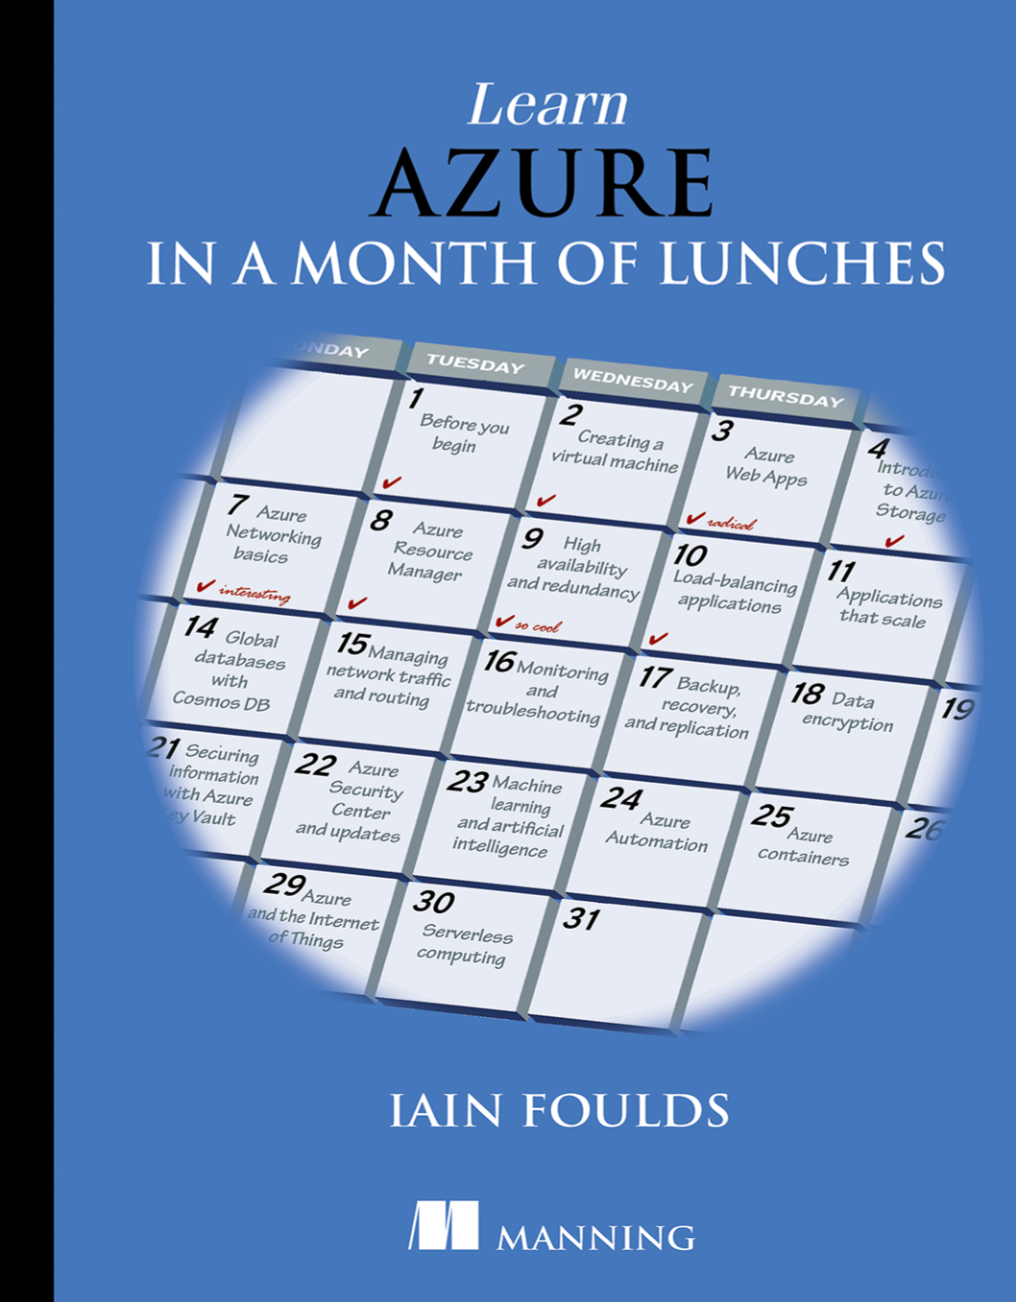 Learn Azure in a Month of Lunches Free E-book #Azure #Cloud